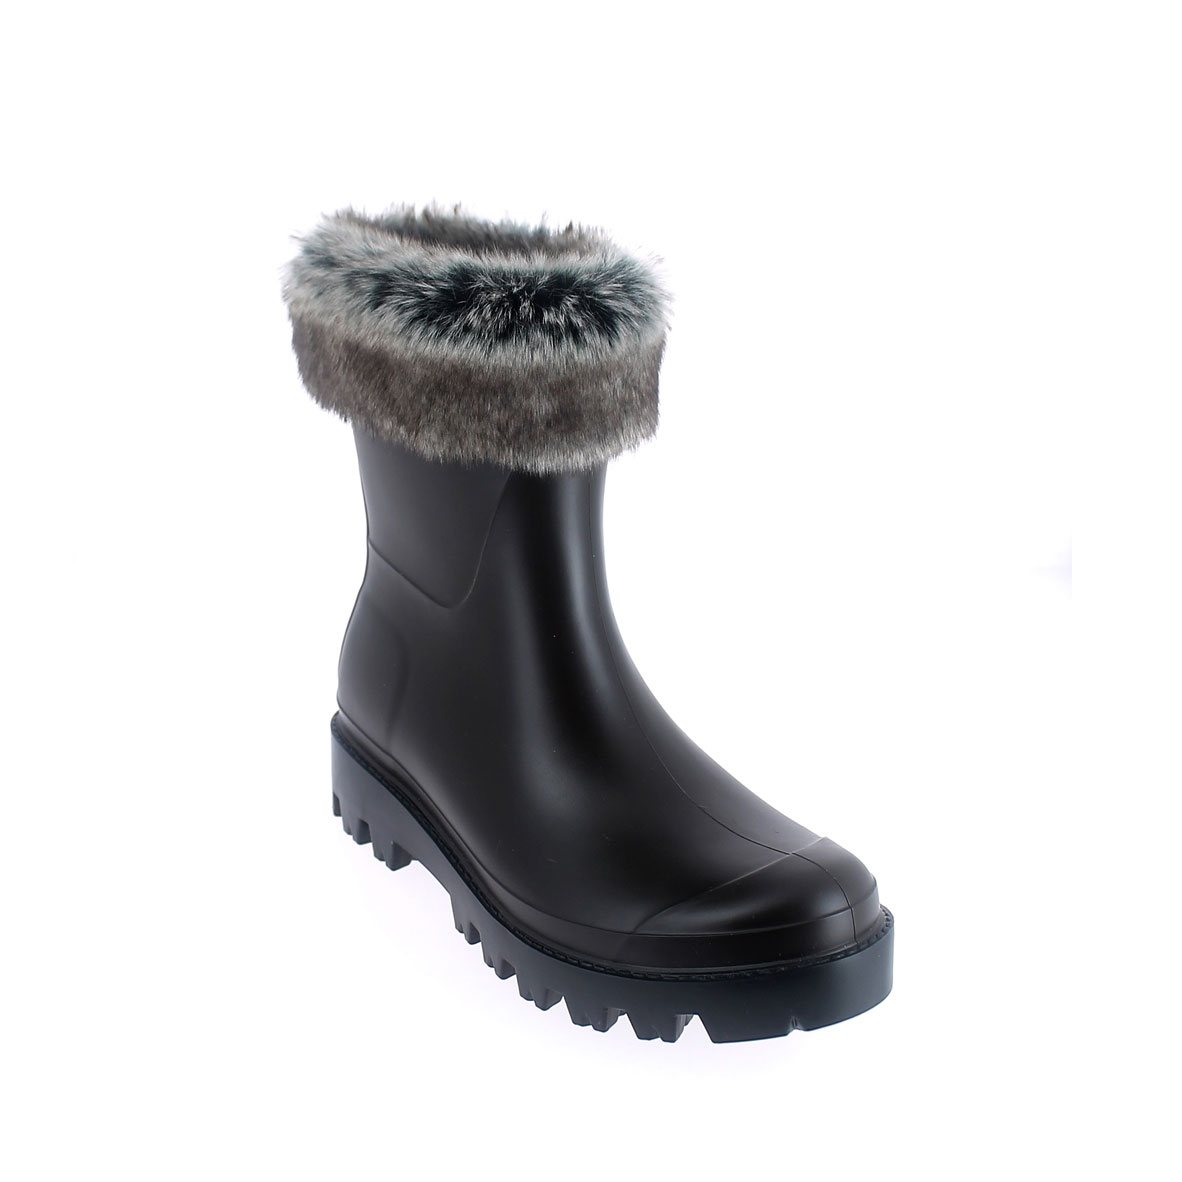 Wellington low boot in Testa di moro pvc with inner lining and cuff